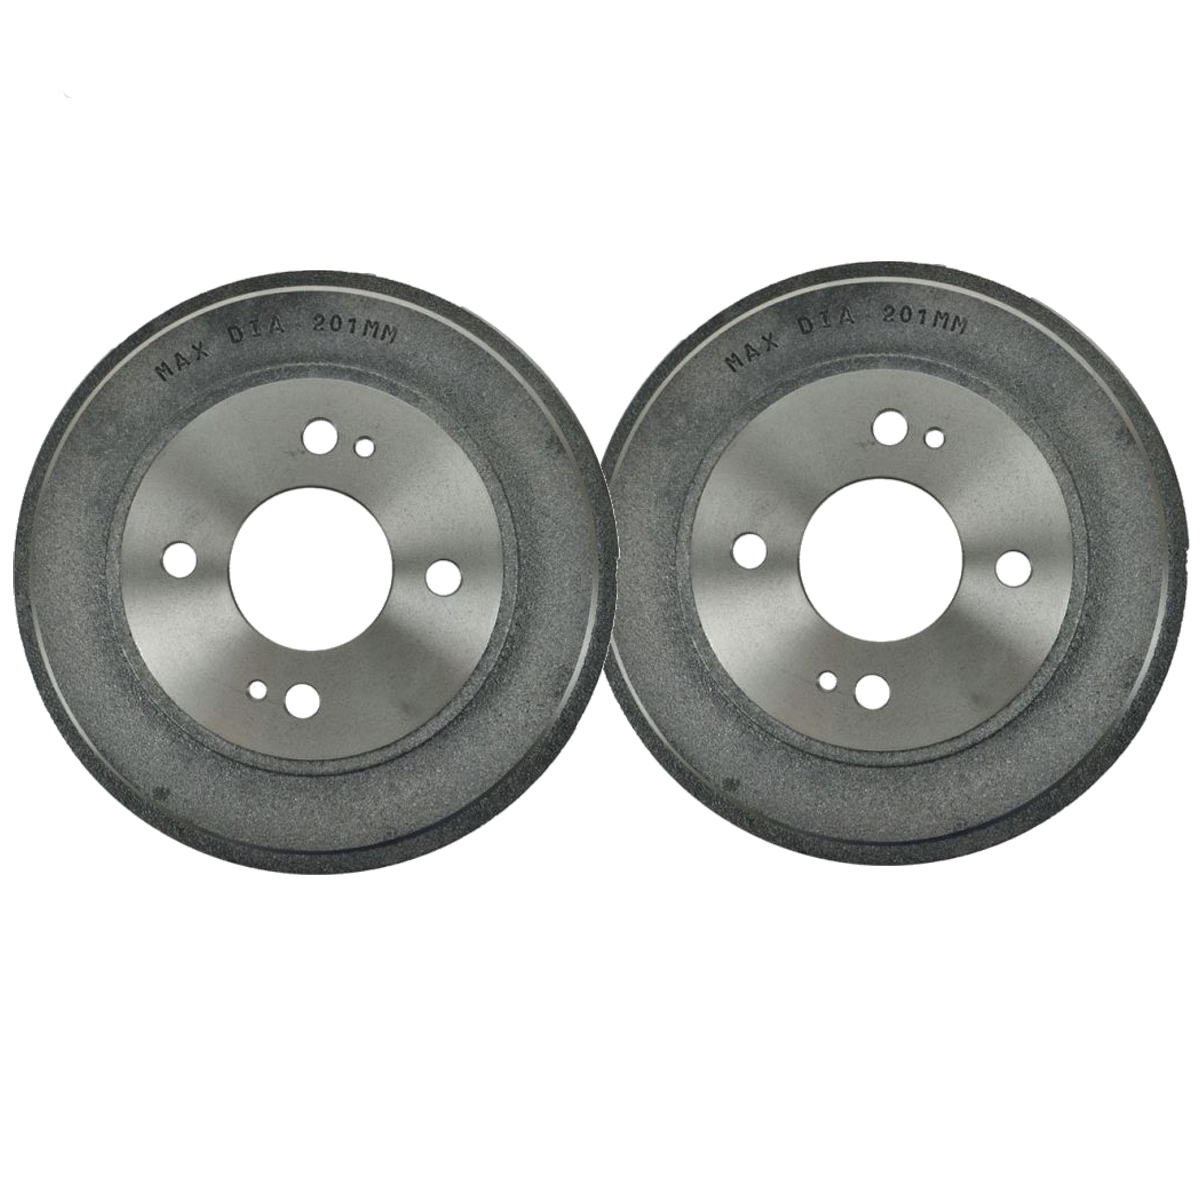 Pair (2) REAR  Brake Drum Set for Honda Civic FIT Insight